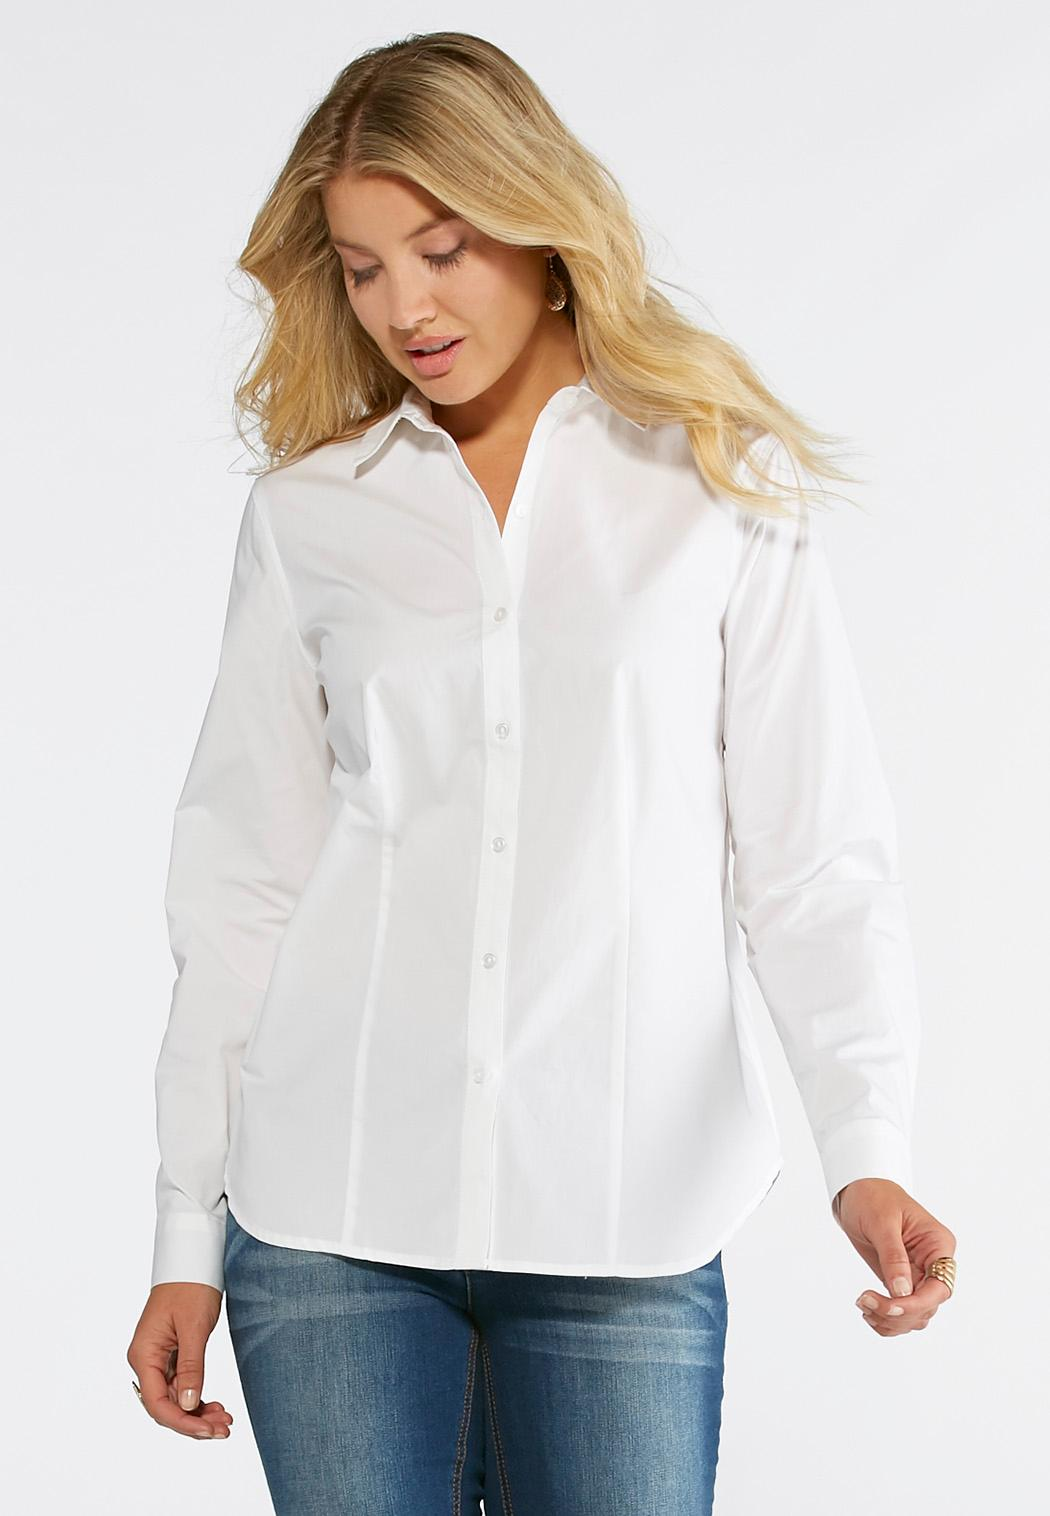 boyfriend button down shirt shirts blouses cato fashions